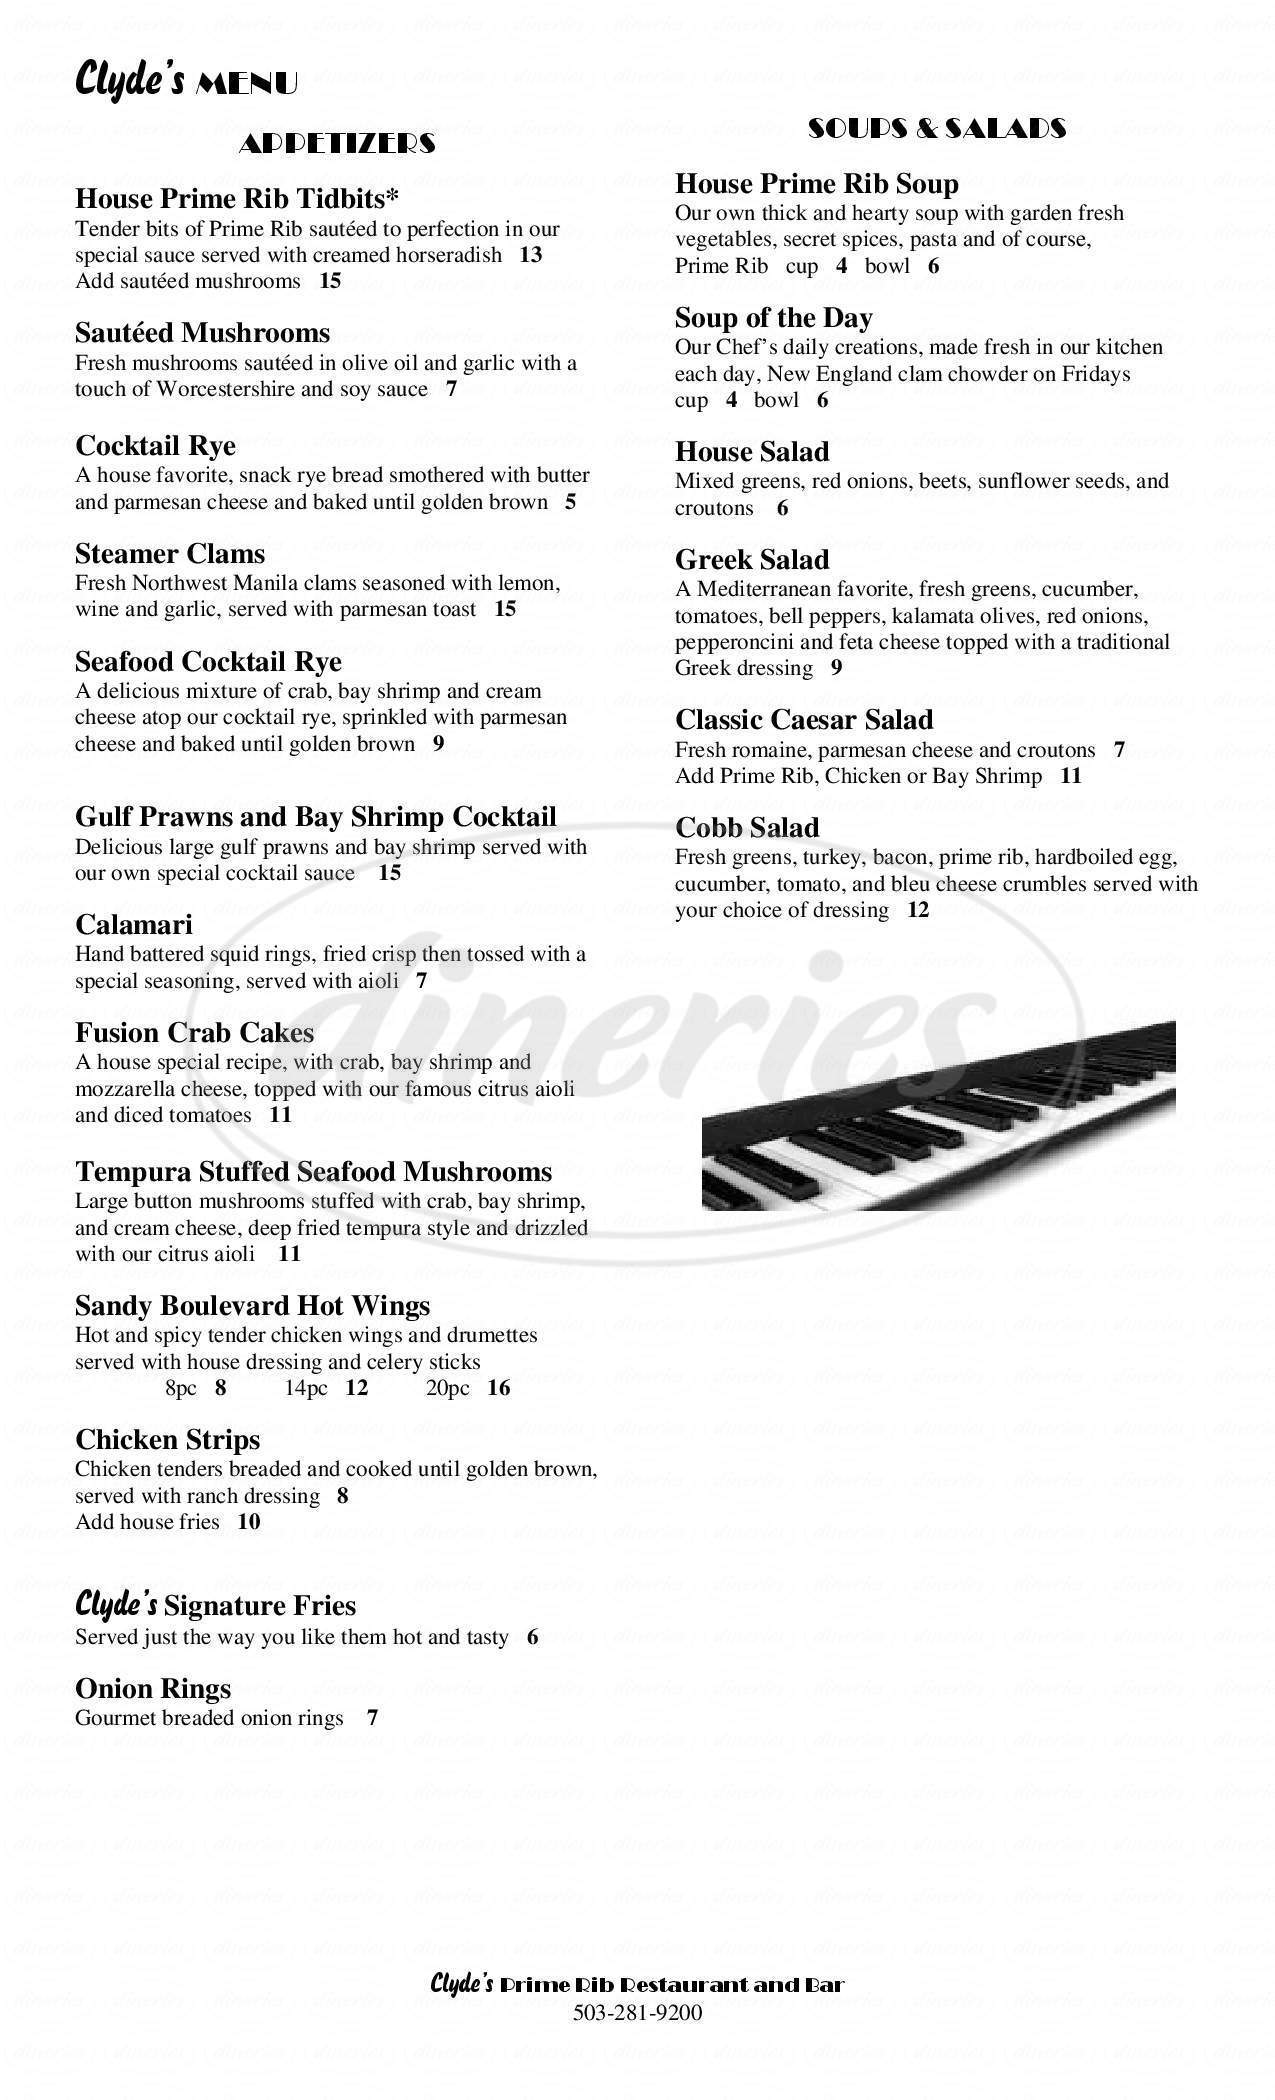 menu for Clyde's Prime Rib Restaurant & Bar